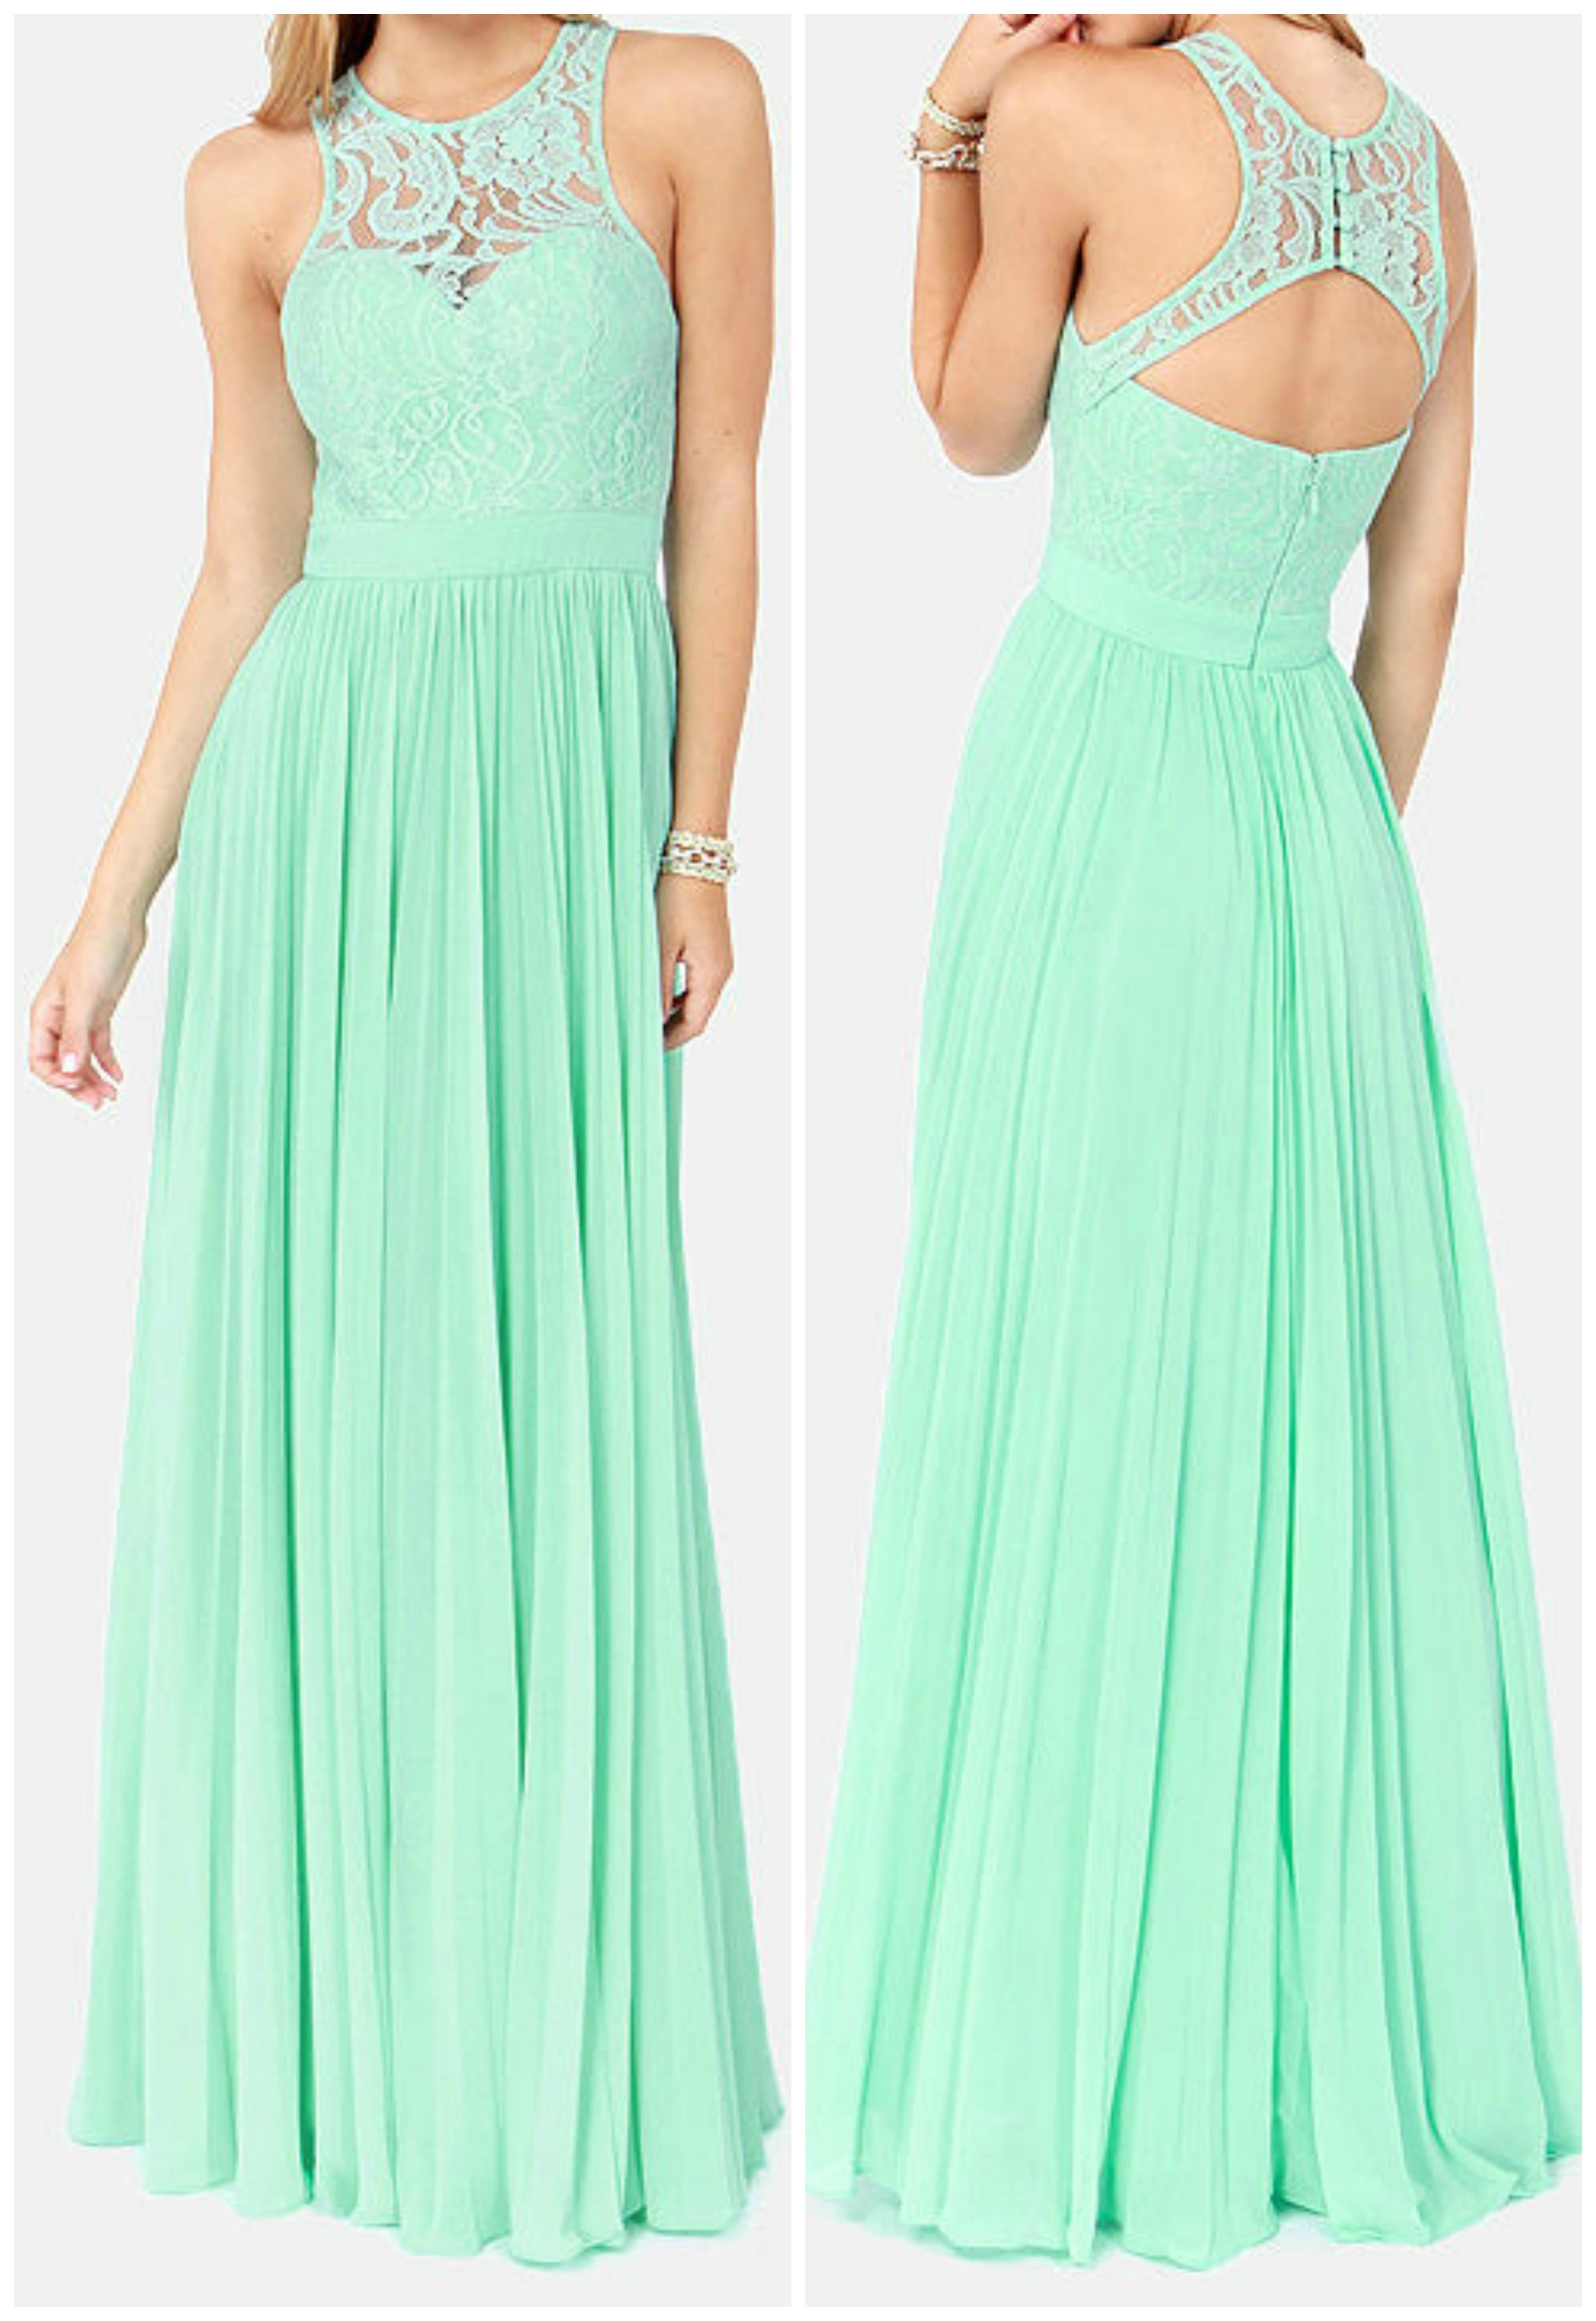 8328bbef15 x Bariano Best of Both Whirleds Mint Green Lace Maxi Dress | Best of ...